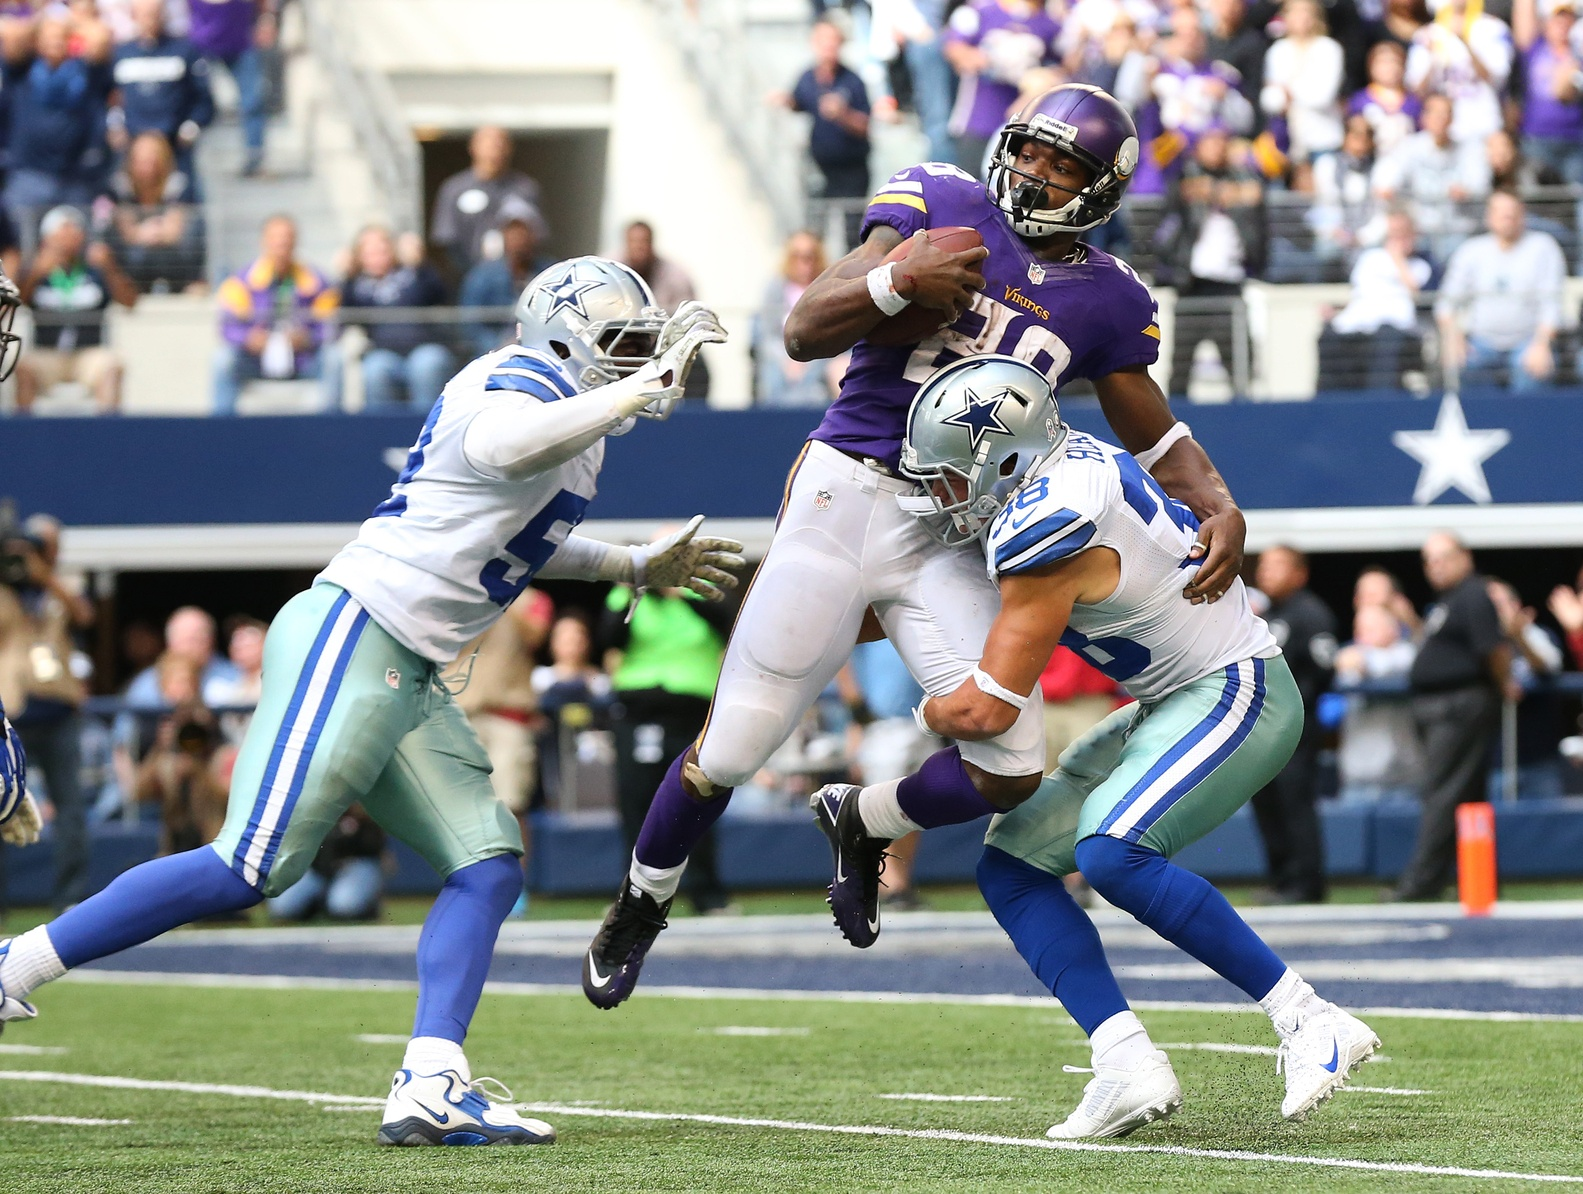 Adrian Peterson somehow scored a touchdown on this play.